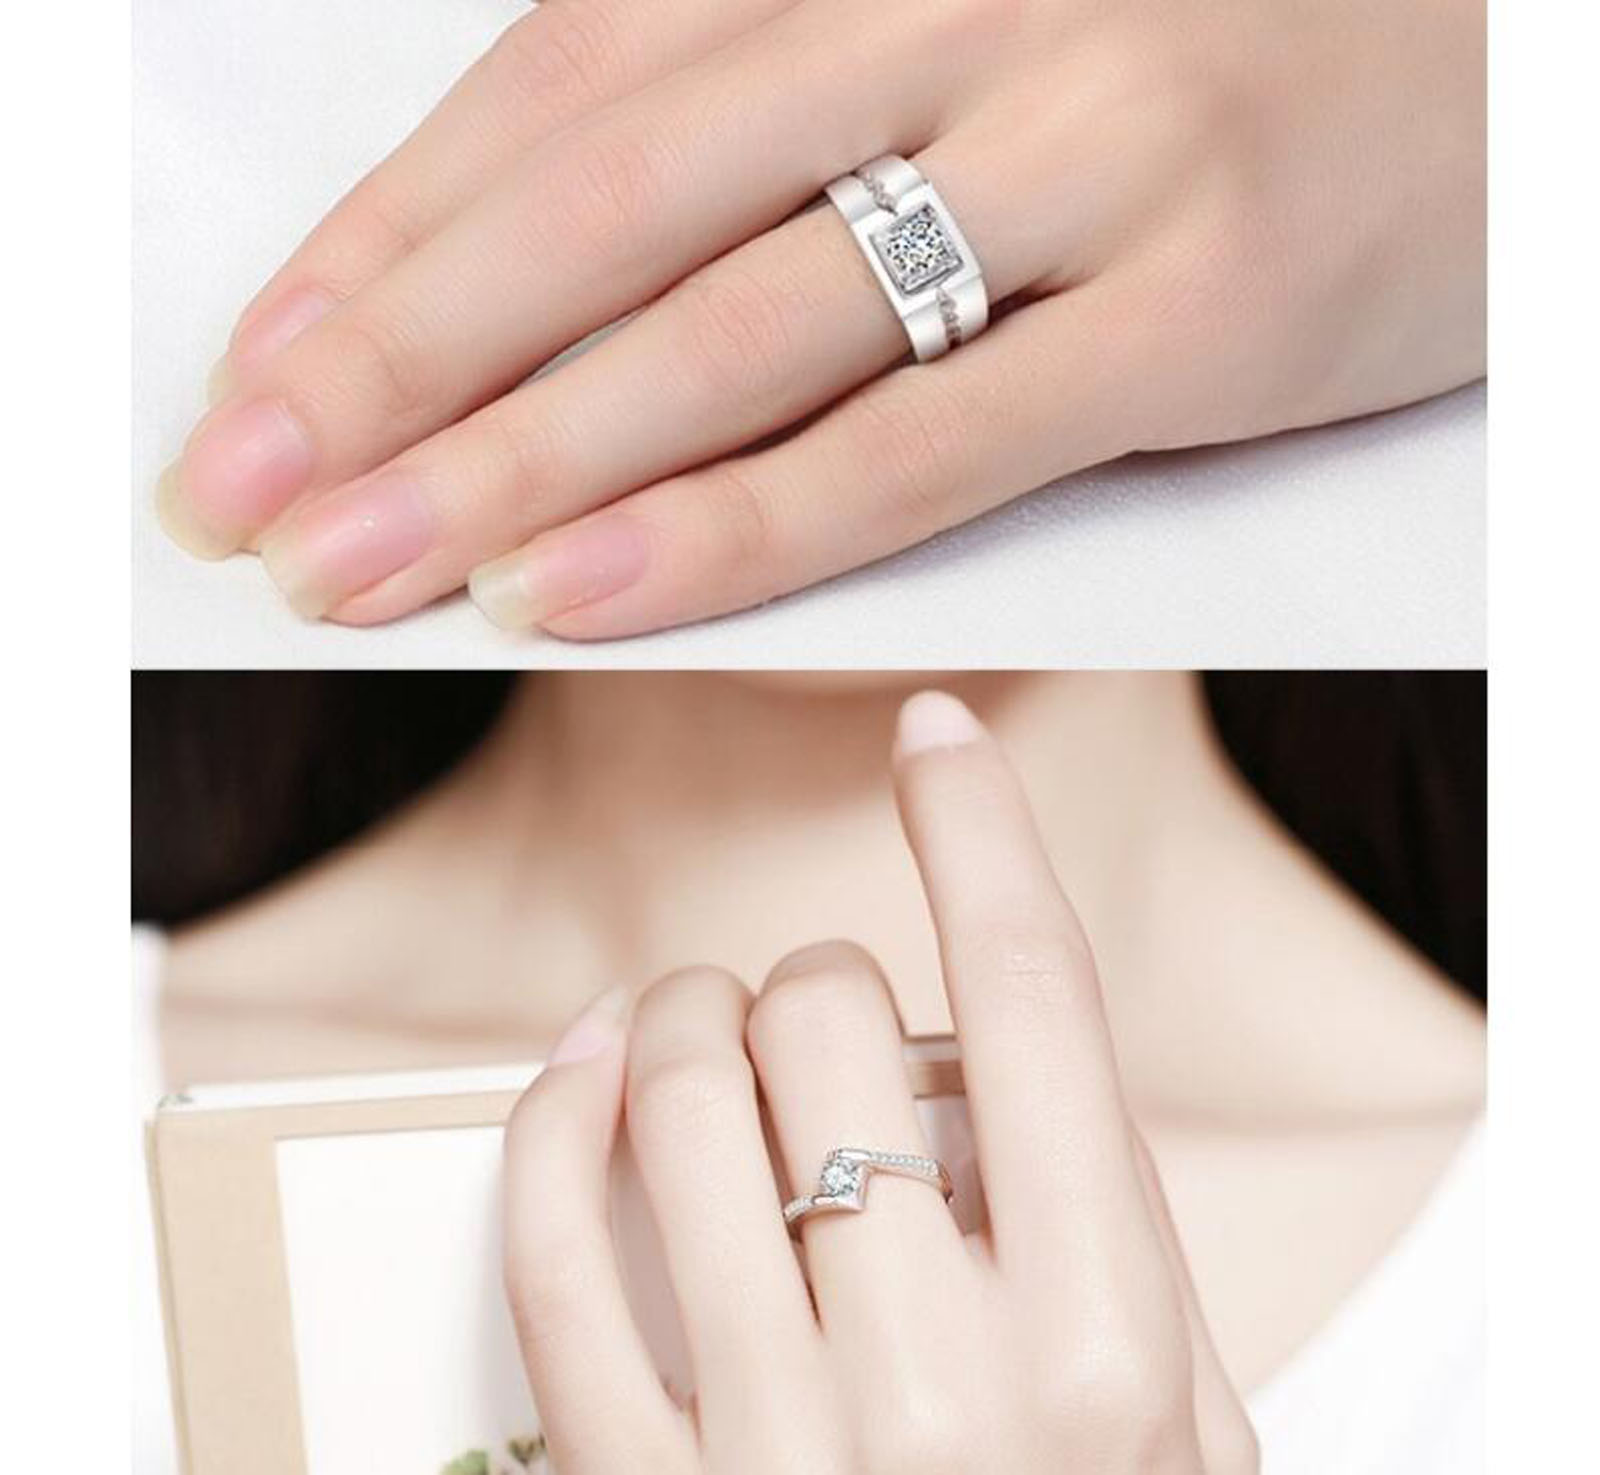 w ring her stainless get his steel couple new set free com shipping wedding king engagement on rings buy a and wholesale queen aliexpress letters romantic of